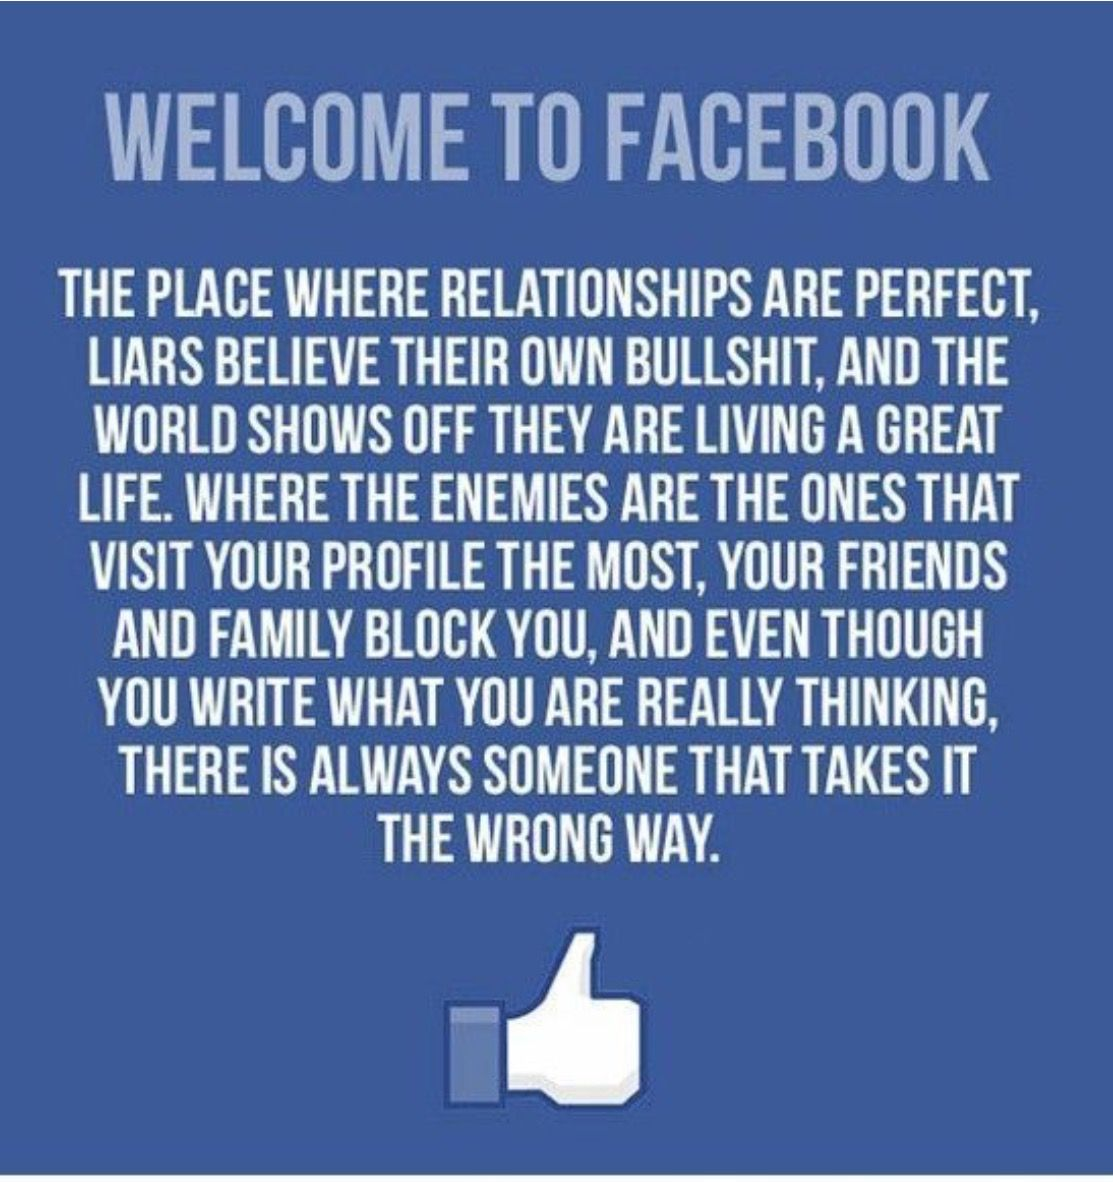 Life Without Facebook Funny Images With Quotes Funny Quotes Facebook Humor